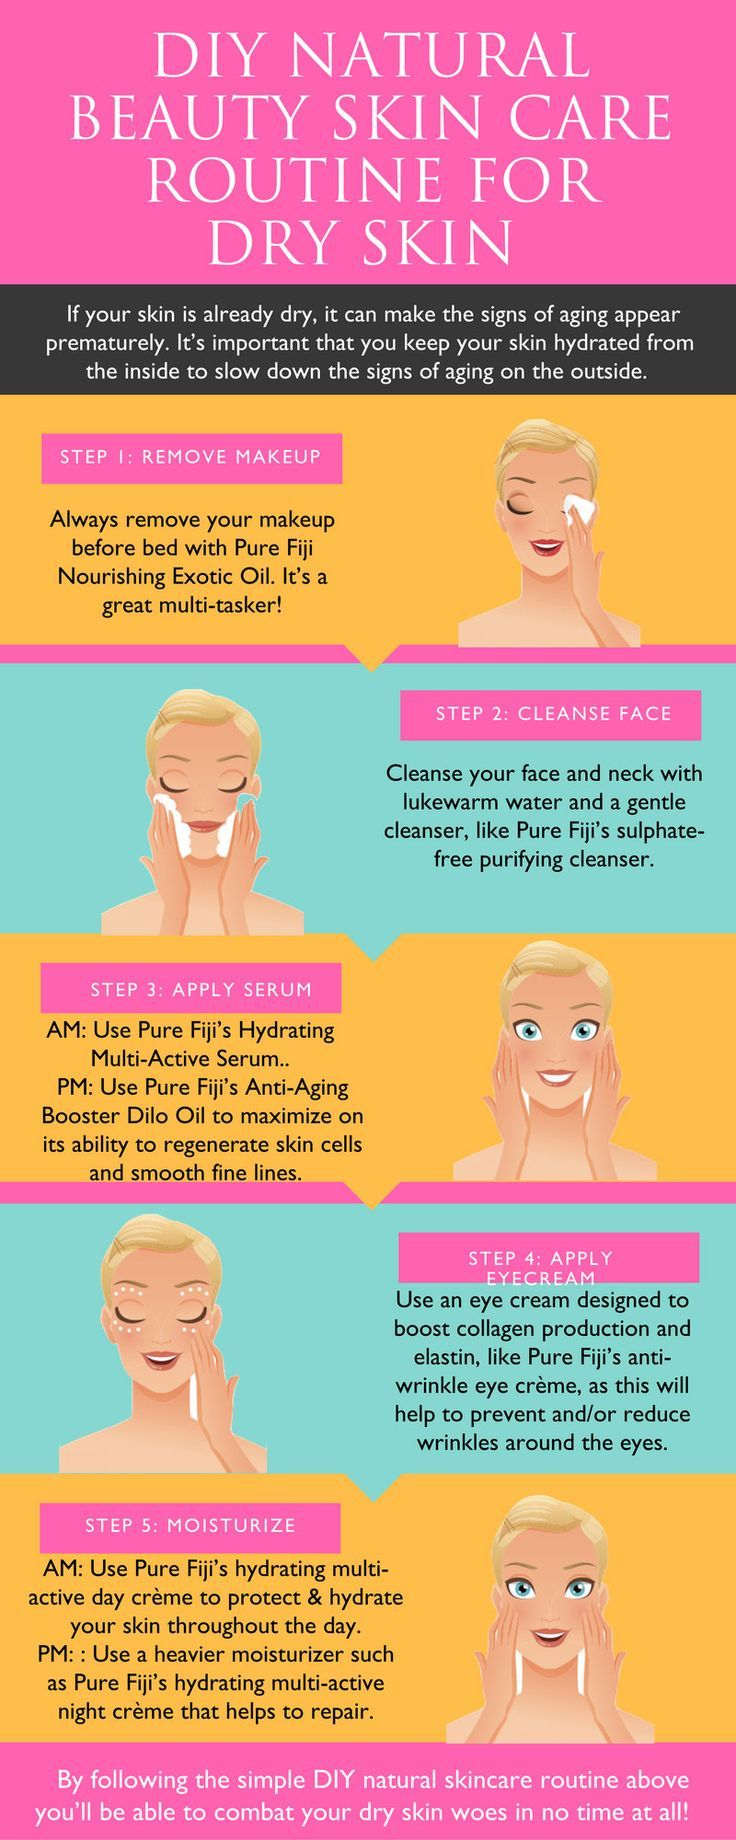 How To Combat Wrinkles And Dry Skin A Diy Skincare Routine For Natural Beauty Dry Skin Care Diy Skin Care Routine Best Skin Care Routine